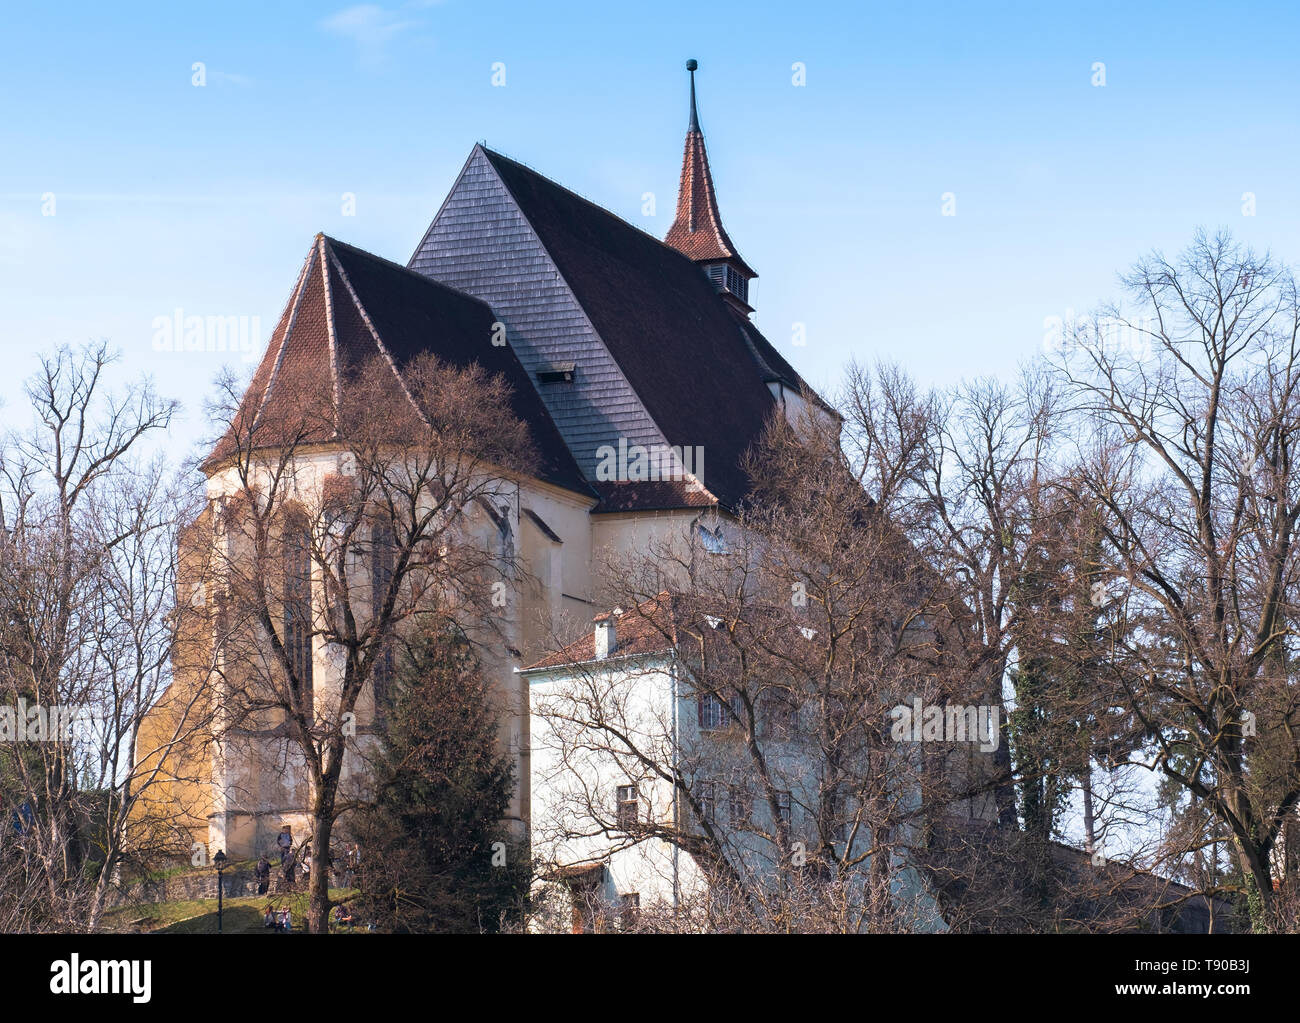 Biserica din Deal, translated as Church on the Hill, one of the symbols of the town of Sighisoara, on a sunny day. - Stock Image